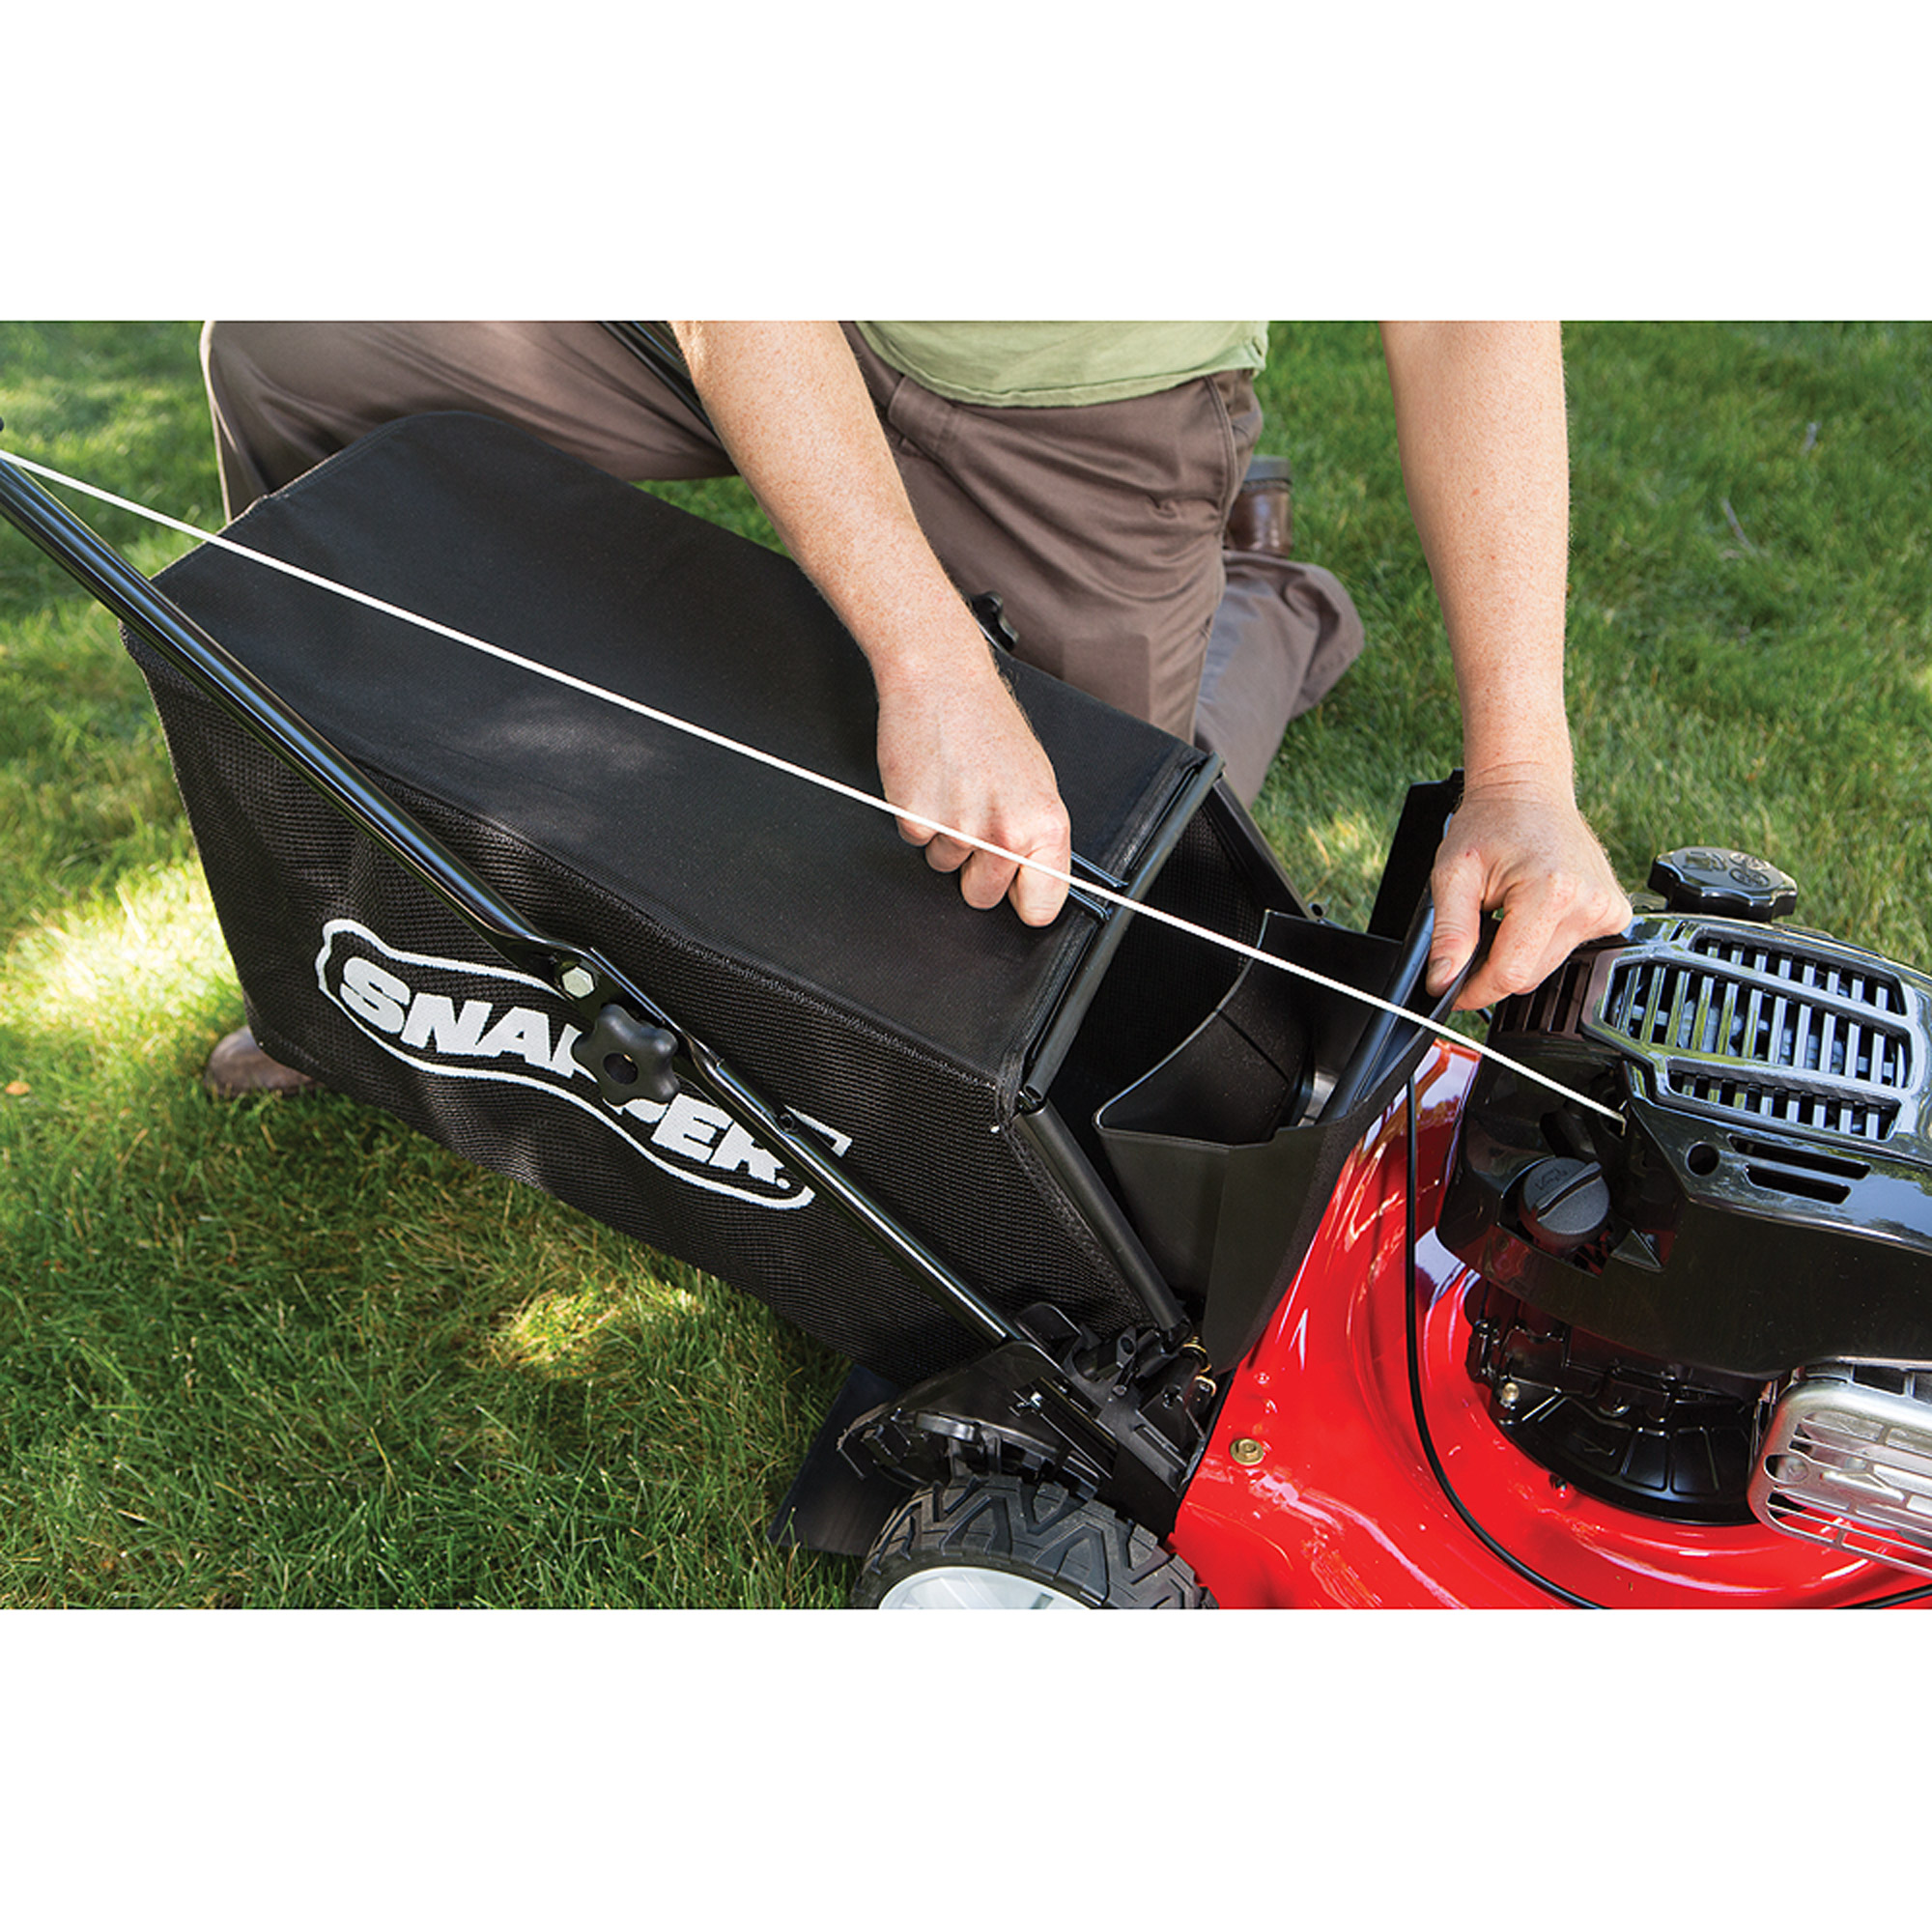 Sner 21 Self Propelled Gas Mower With Side Discharge Mulching Rear Bag